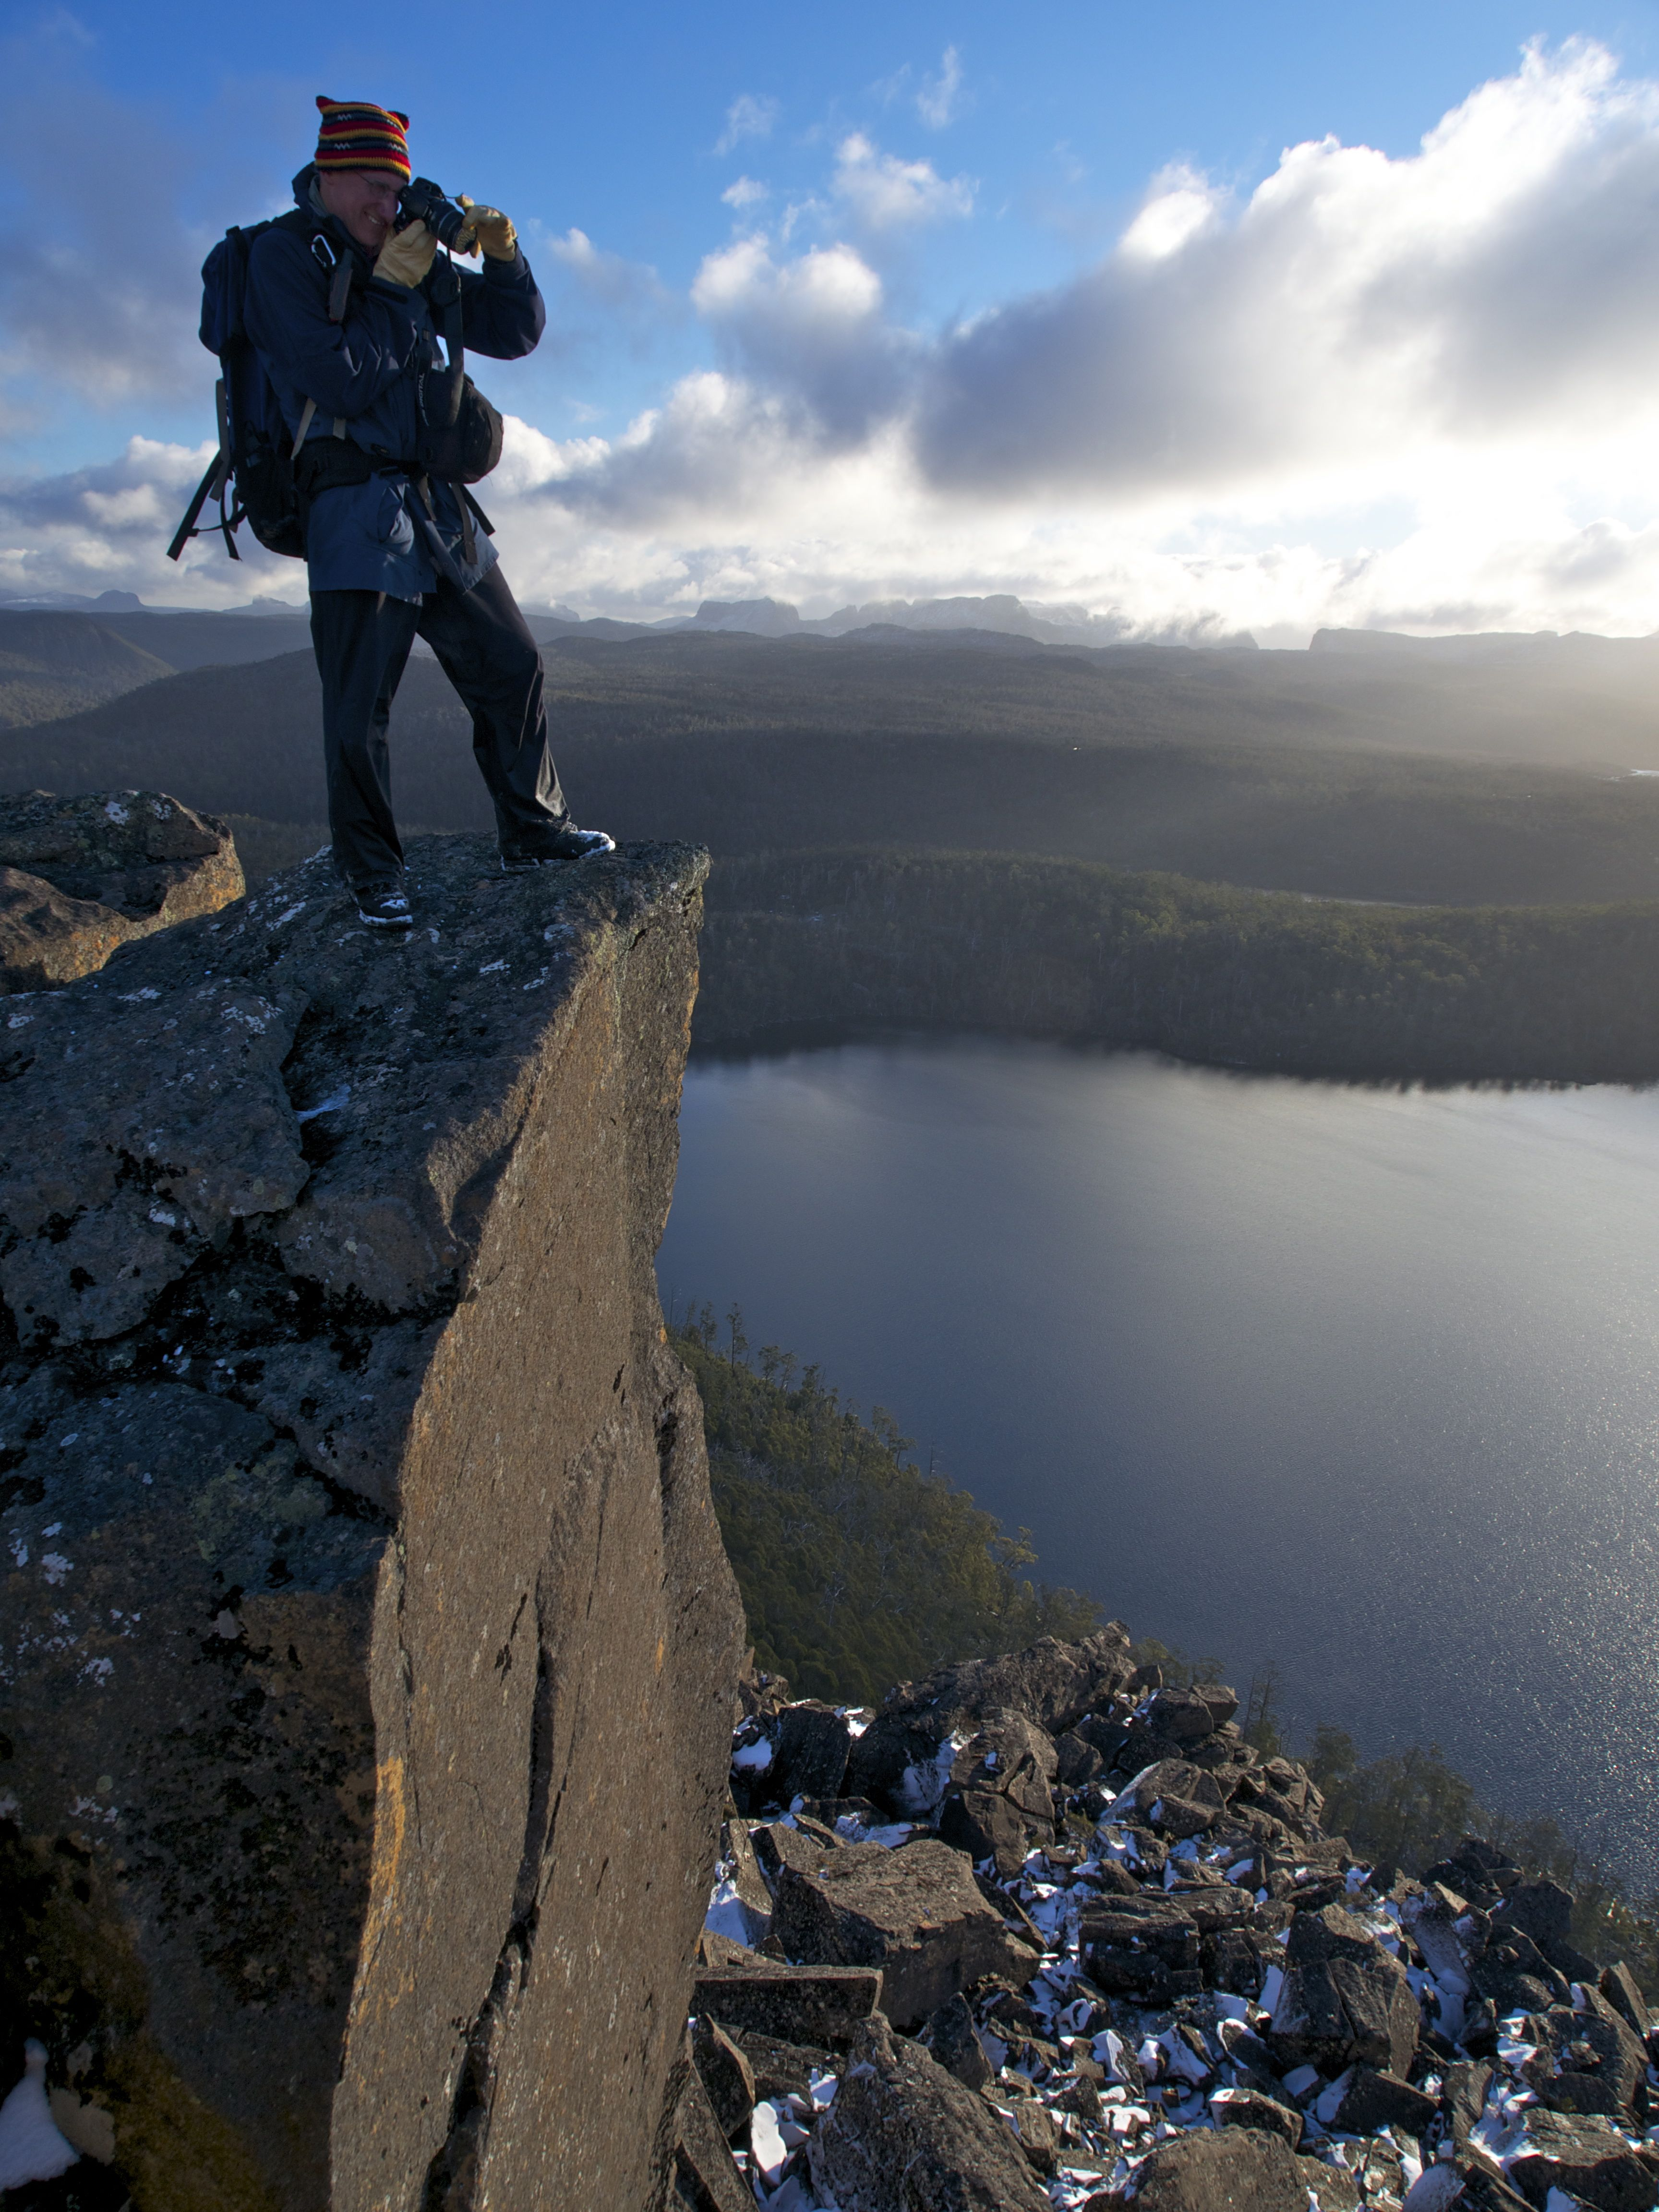 Mucking around on the edge.. anything for a photo ;)!